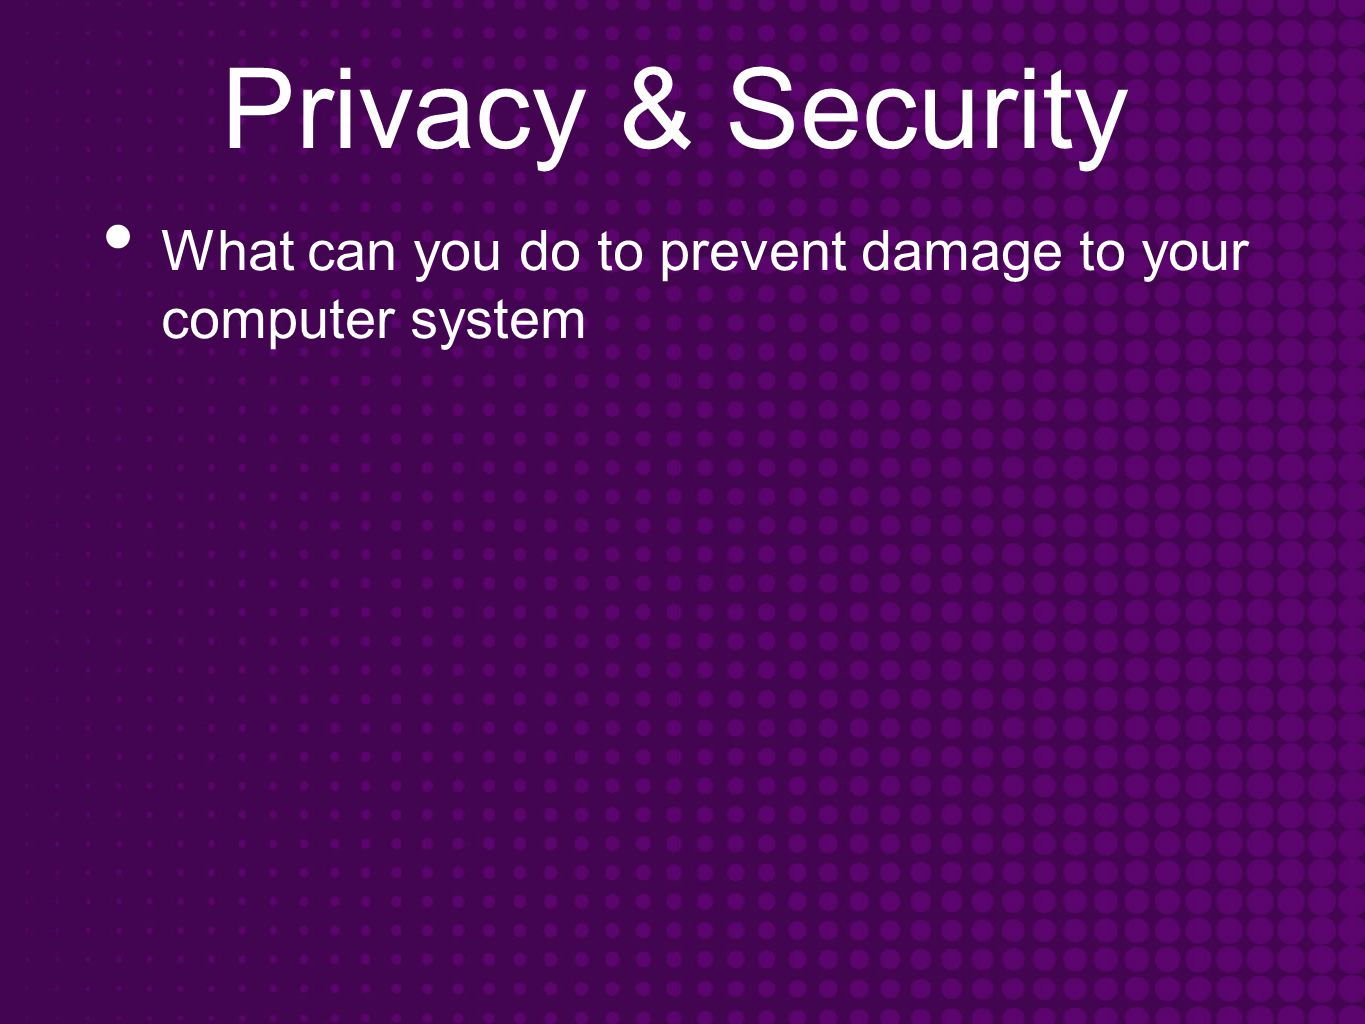 Privacy & Security What can you do to prevent damage to your computer system